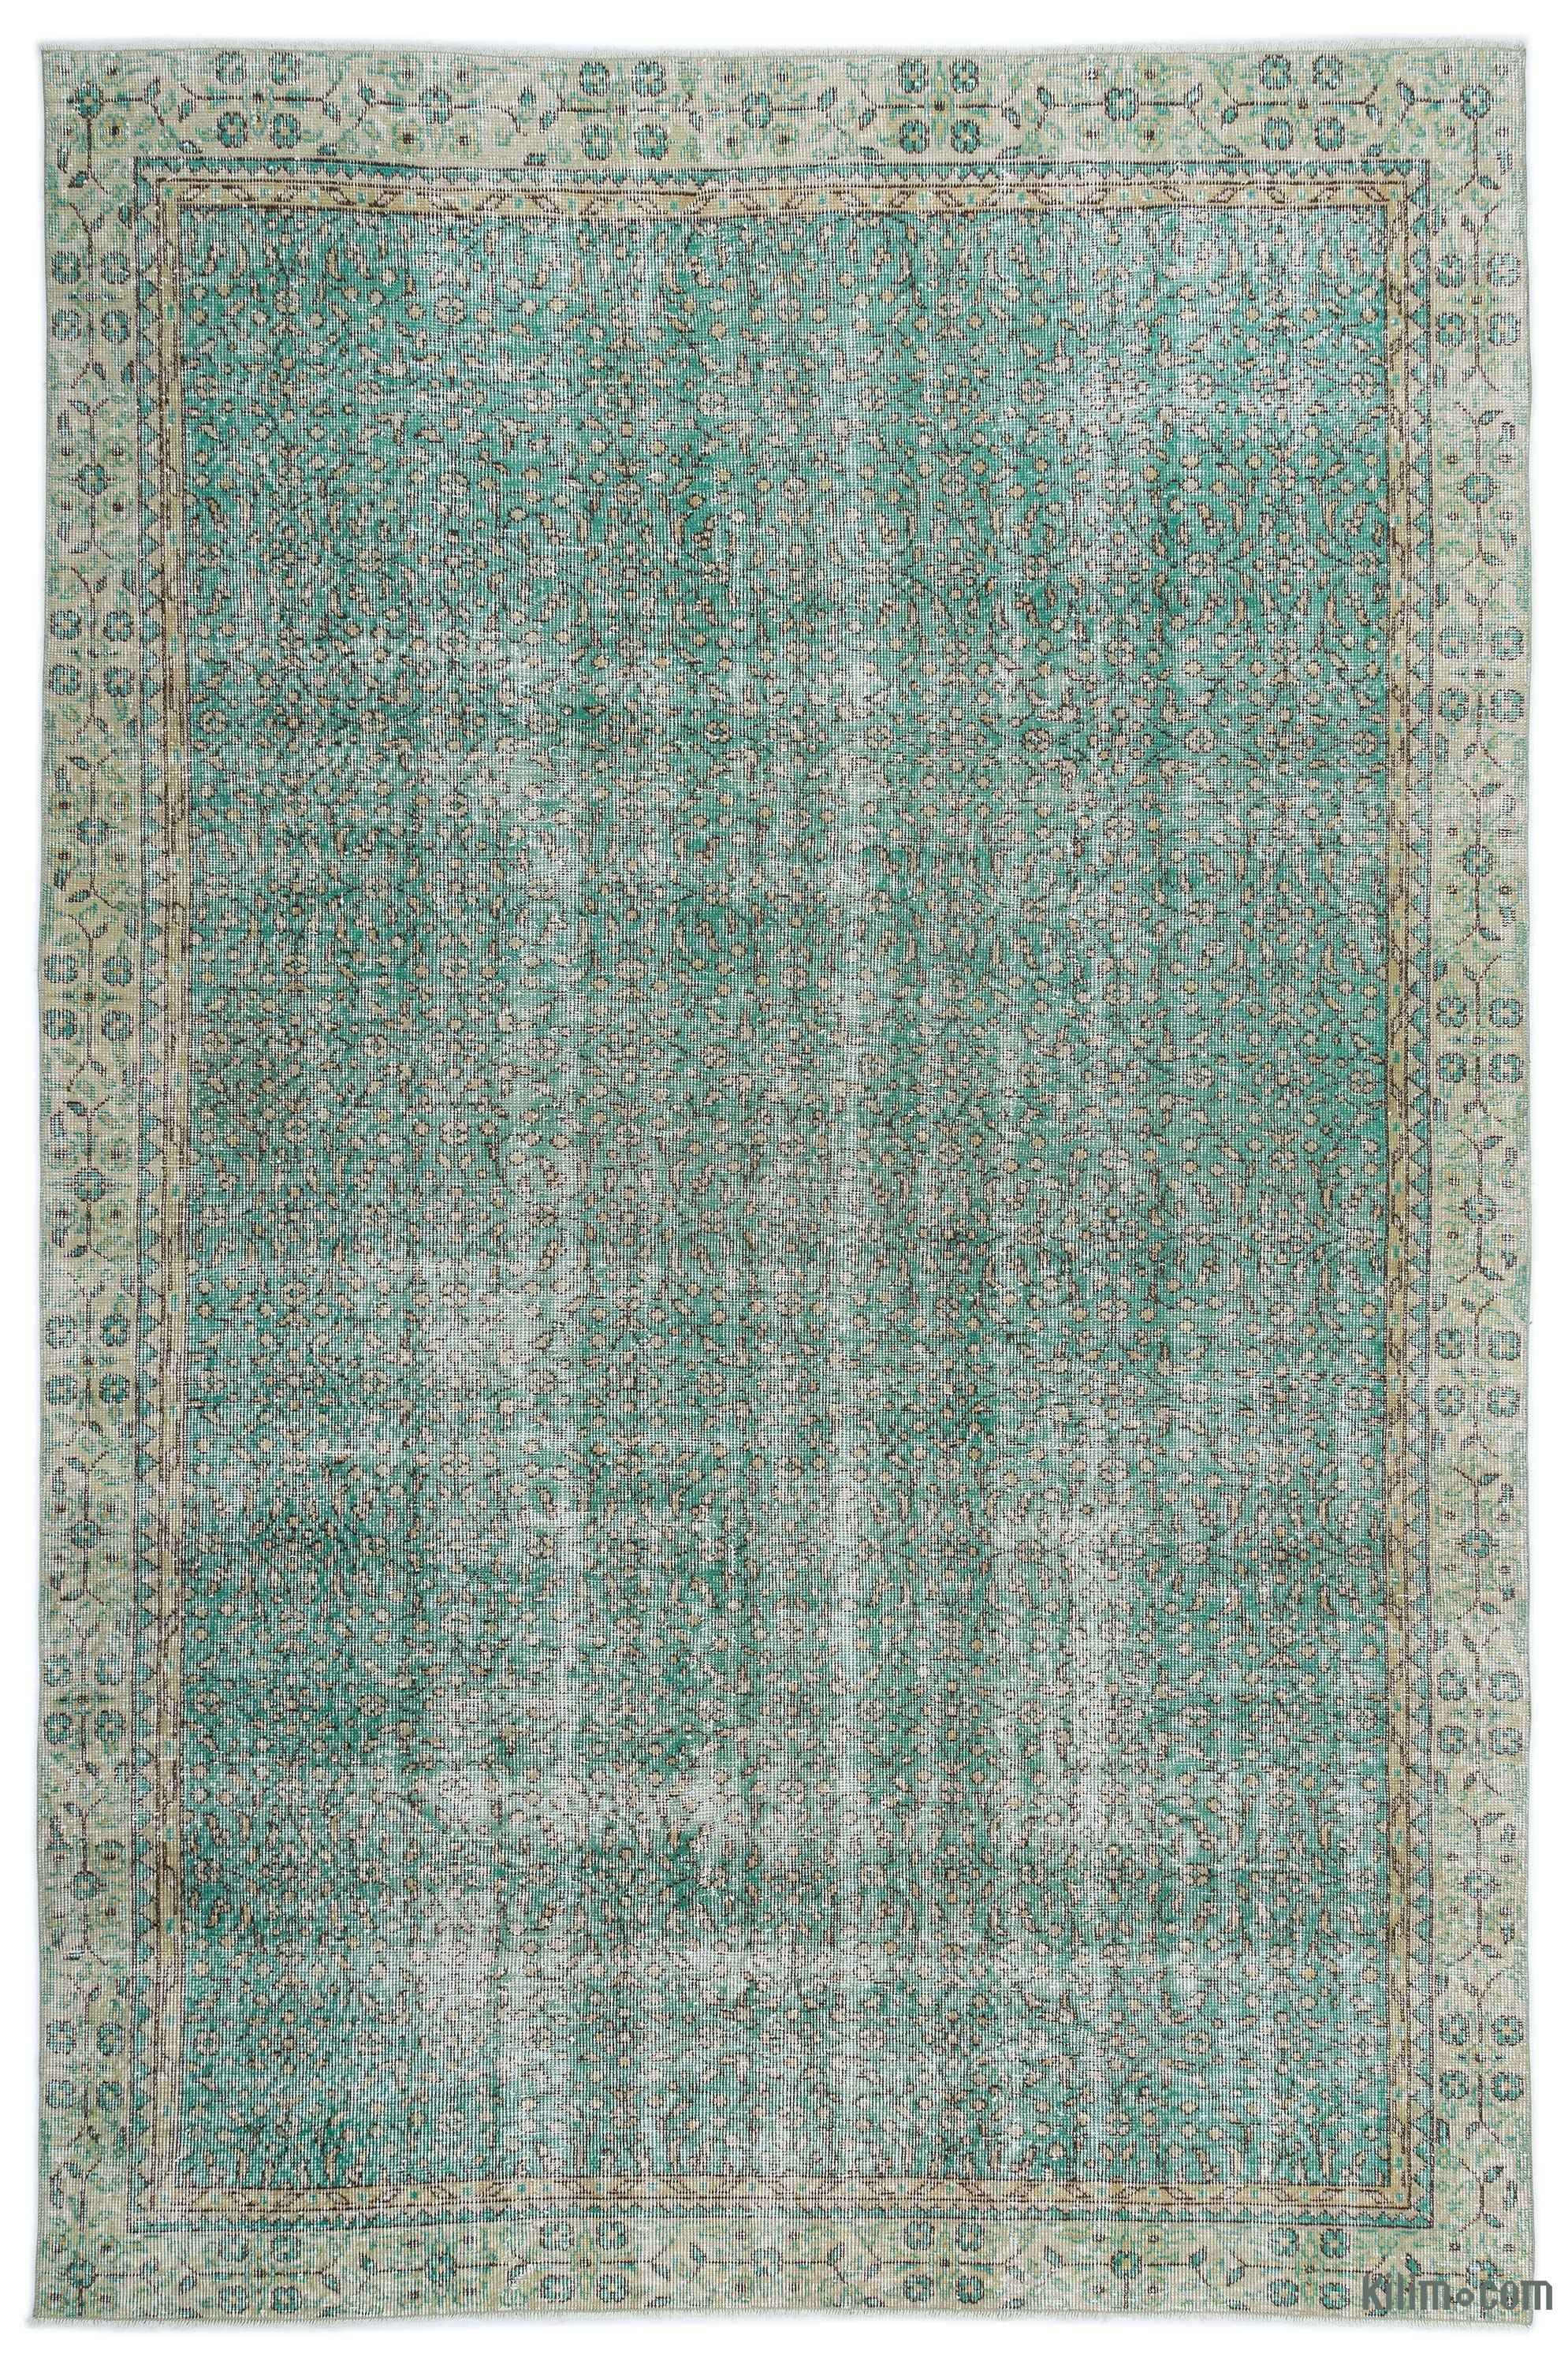 Turkish Vintage Area Rug 6 6 X 9 9 78 In X 117 In